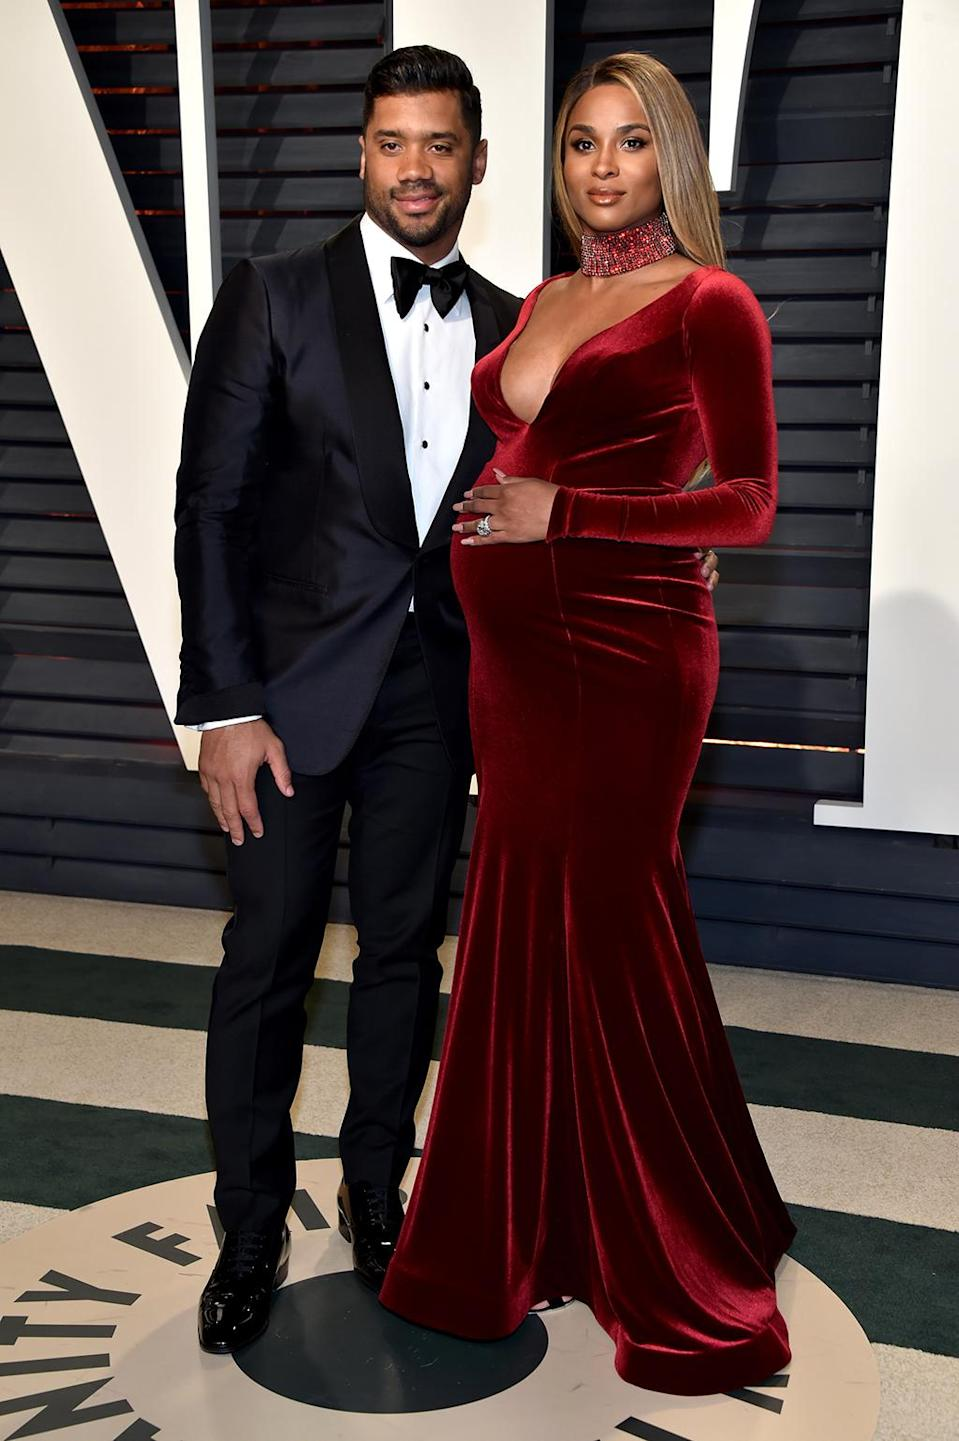 <p>NFL player Russell Wilson and singer Ciara attend the 2017 Vanity Fair Oscar Party hosted by Graydon Carter at Wallis Annenberg Center for the Performing Arts on February 26, 2017 in Beverly Hills, California. (Photo by Pascal Le Segretain/Getty Images) </p>